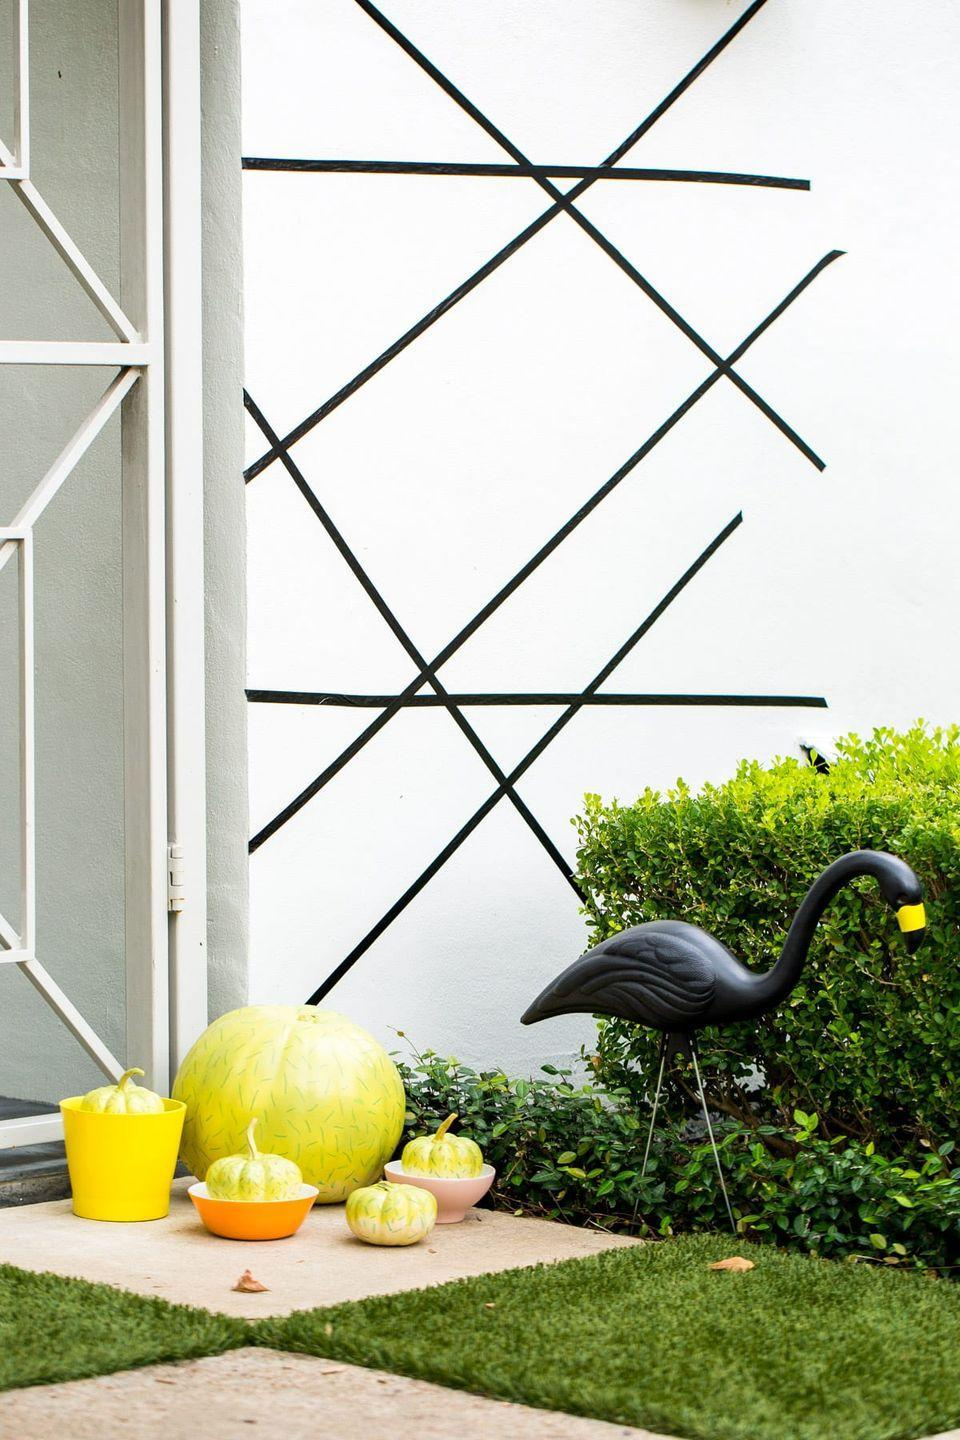 """<p>If your yard has more palm trees than maple trees, don't give up on decorating for Halloween. These plastic flamingos will blend in just fine, no matter the season.</p><p><a class=""""link rapid-noclick-resp"""" href=""""https://www.amazon.com/Pink-Inc-Halloween-Flamingos-Ornaments/dp/B000WM8W6K/?tag=syn-yahoo-20&ascsubtag=%5Bartid%7C10055.g.421%5Bsrc%7Cyahoo-us"""" rel=""""nofollow noopener"""" target=""""_blank"""" data-ylk=""""slk:SHOP BLACK FLAMINGOS"""">SHOP BLACK FLAMINGOS</a></p><p><em><a href=""""https://sugarandcloth.com/palm-springs-inspired-halloween-decor/"""" rel=""""nofollow noopener"""" target=""""_blank"""" data-ylk=""""slk:Get the tutorial at Sugar & Cloth »"""" class=""""link rapid-noclick-resp"""">Get the tutorial at Sugar & Cloth »</a></em> </p>"""